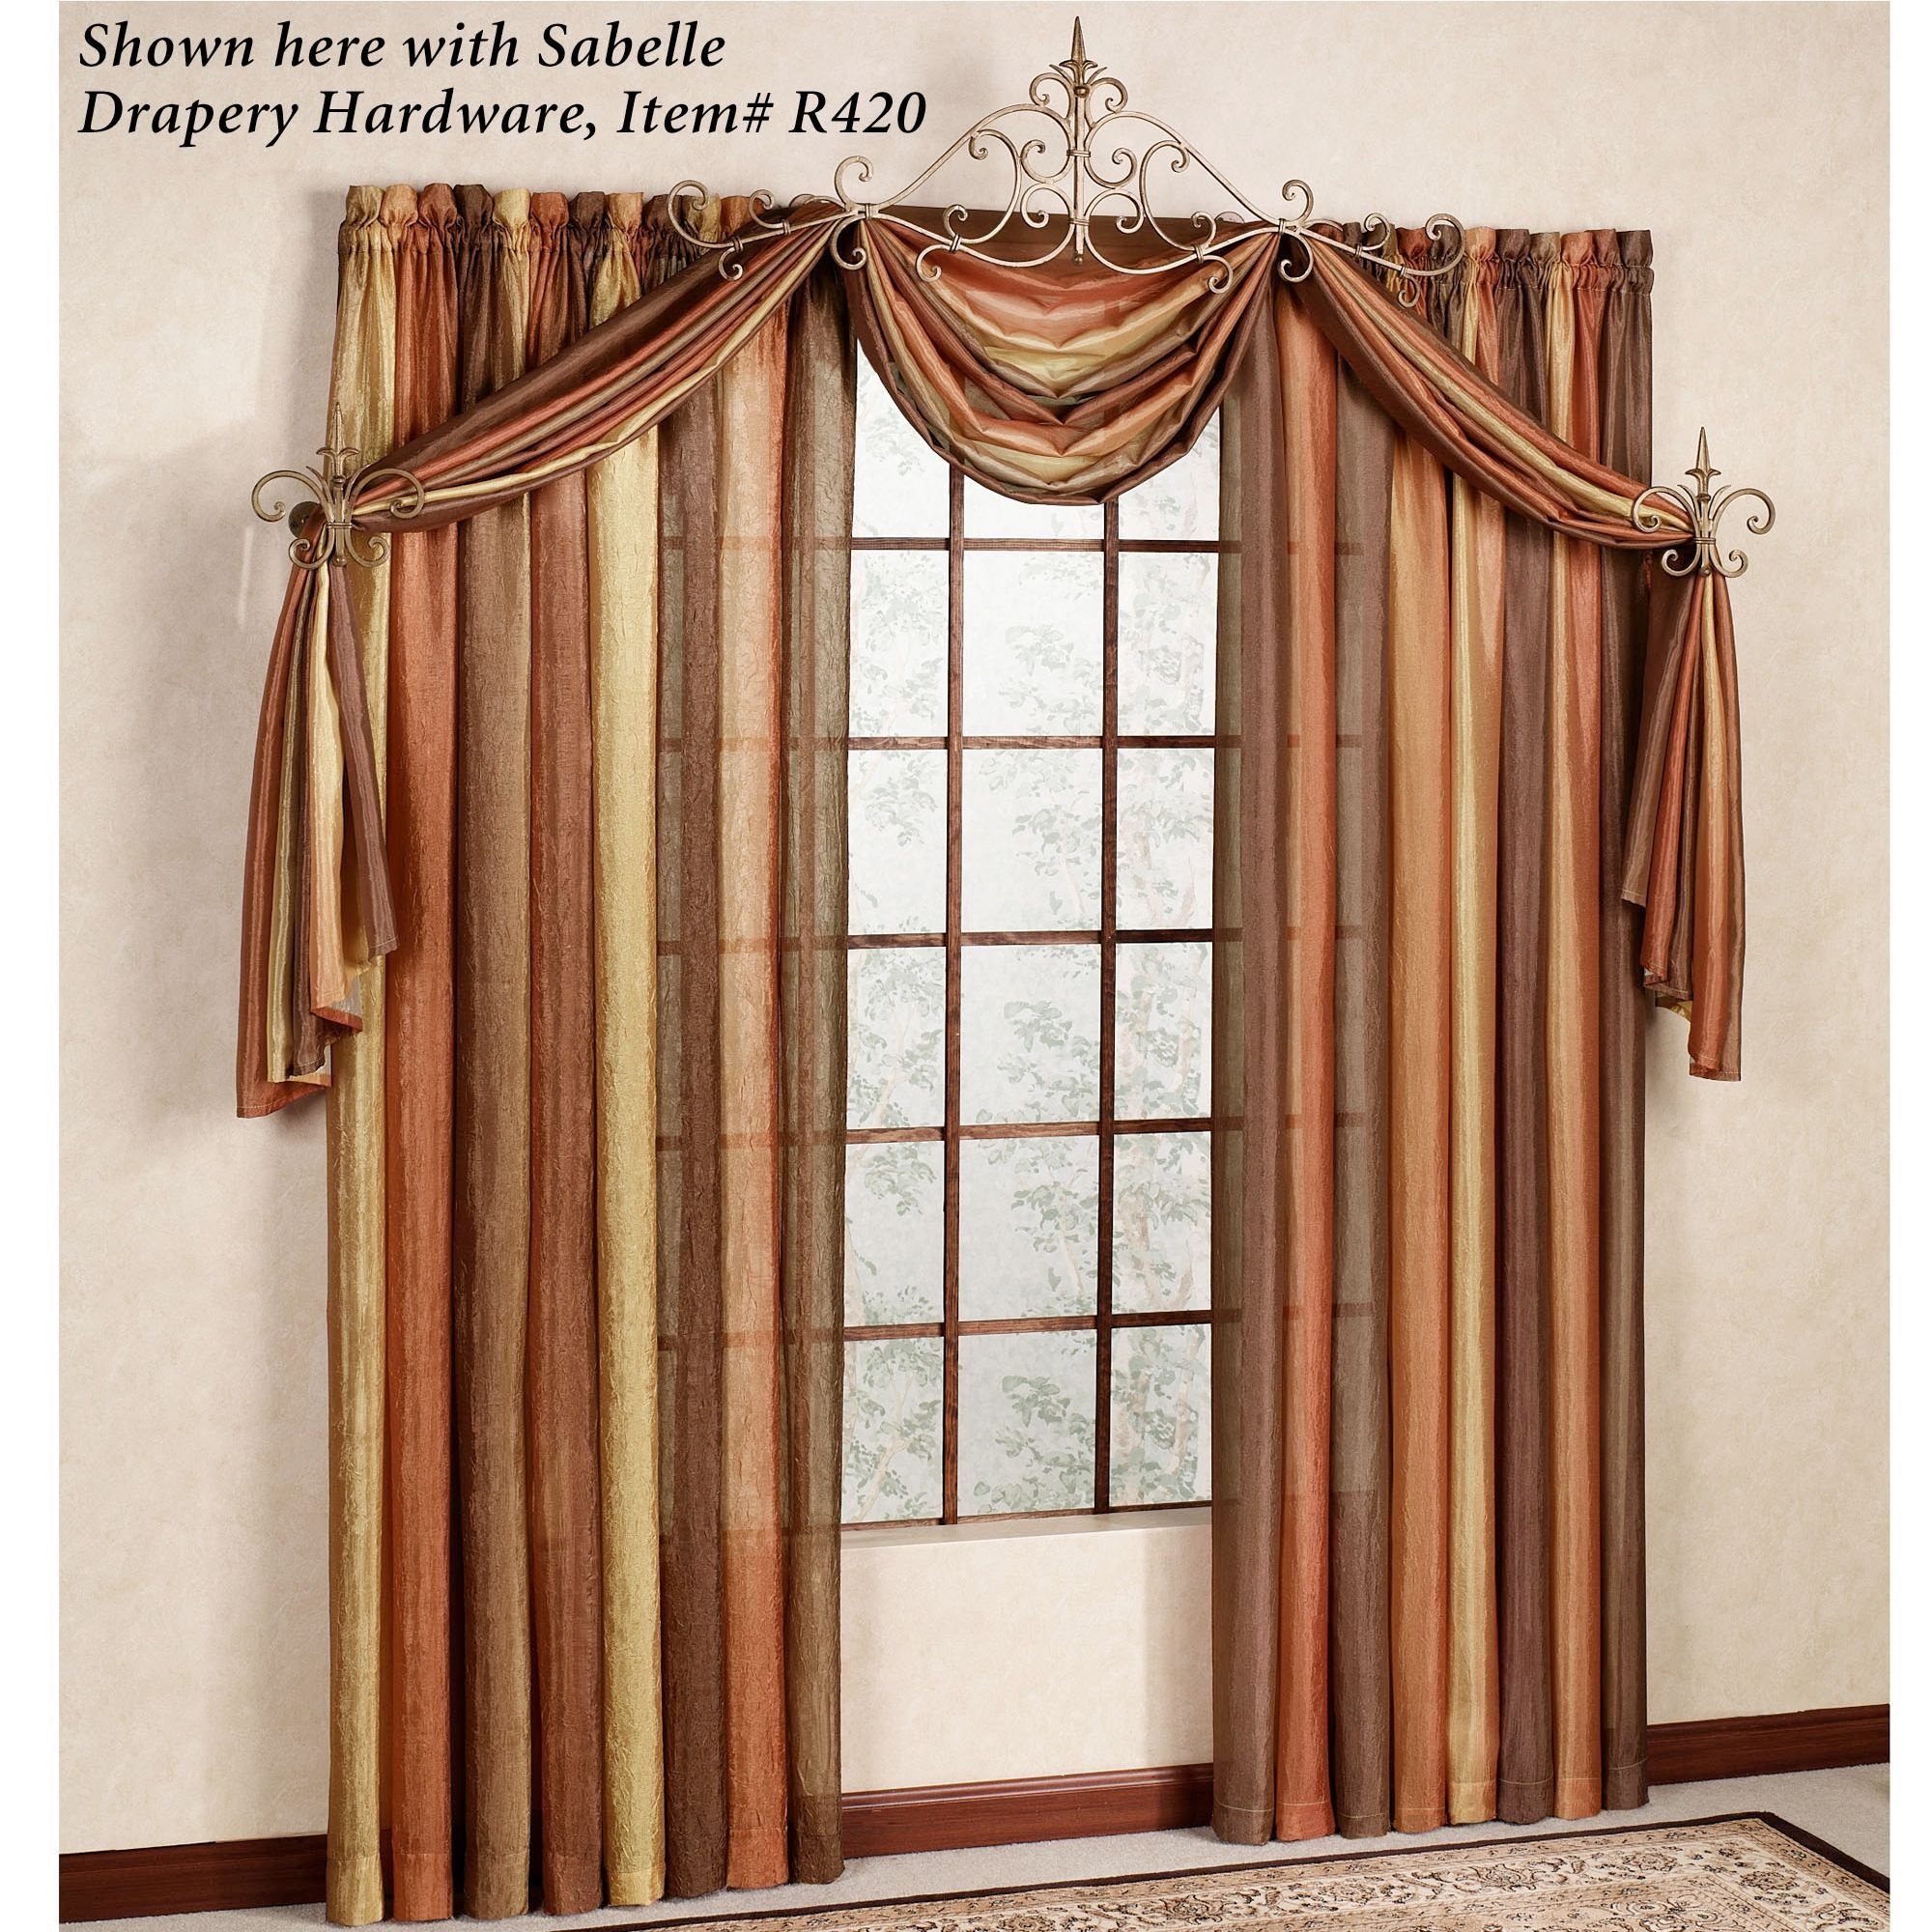 Ordinary Sheer Scarf Valance Window Treatments Part - 6: Ombre Semi-Sheer Scarf Valance And Window Treatments